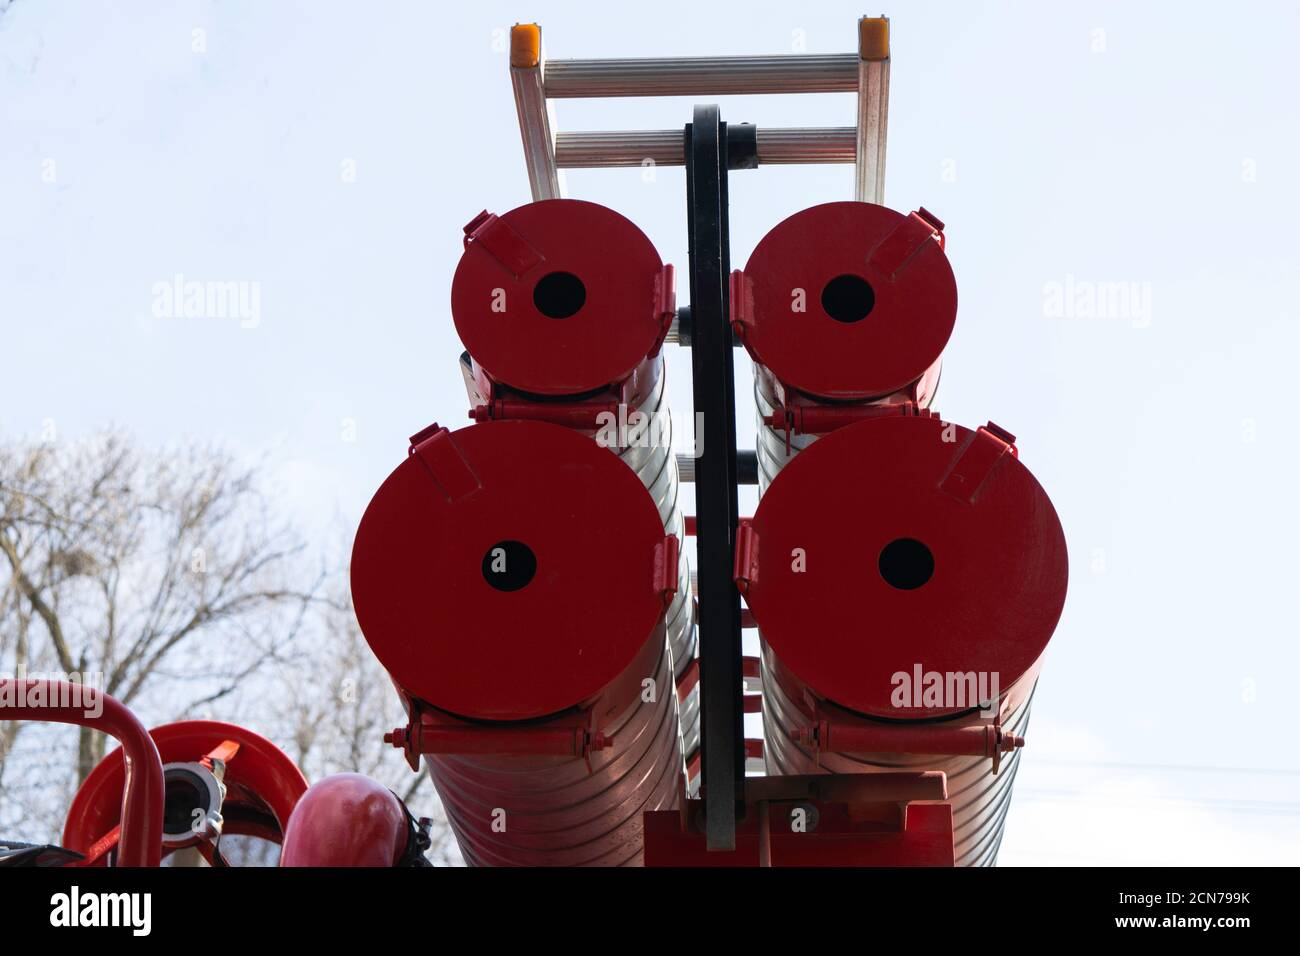 a fire truck, rear view of canisters for transporting suction hoses with fire escapes attached to them Stock Photo